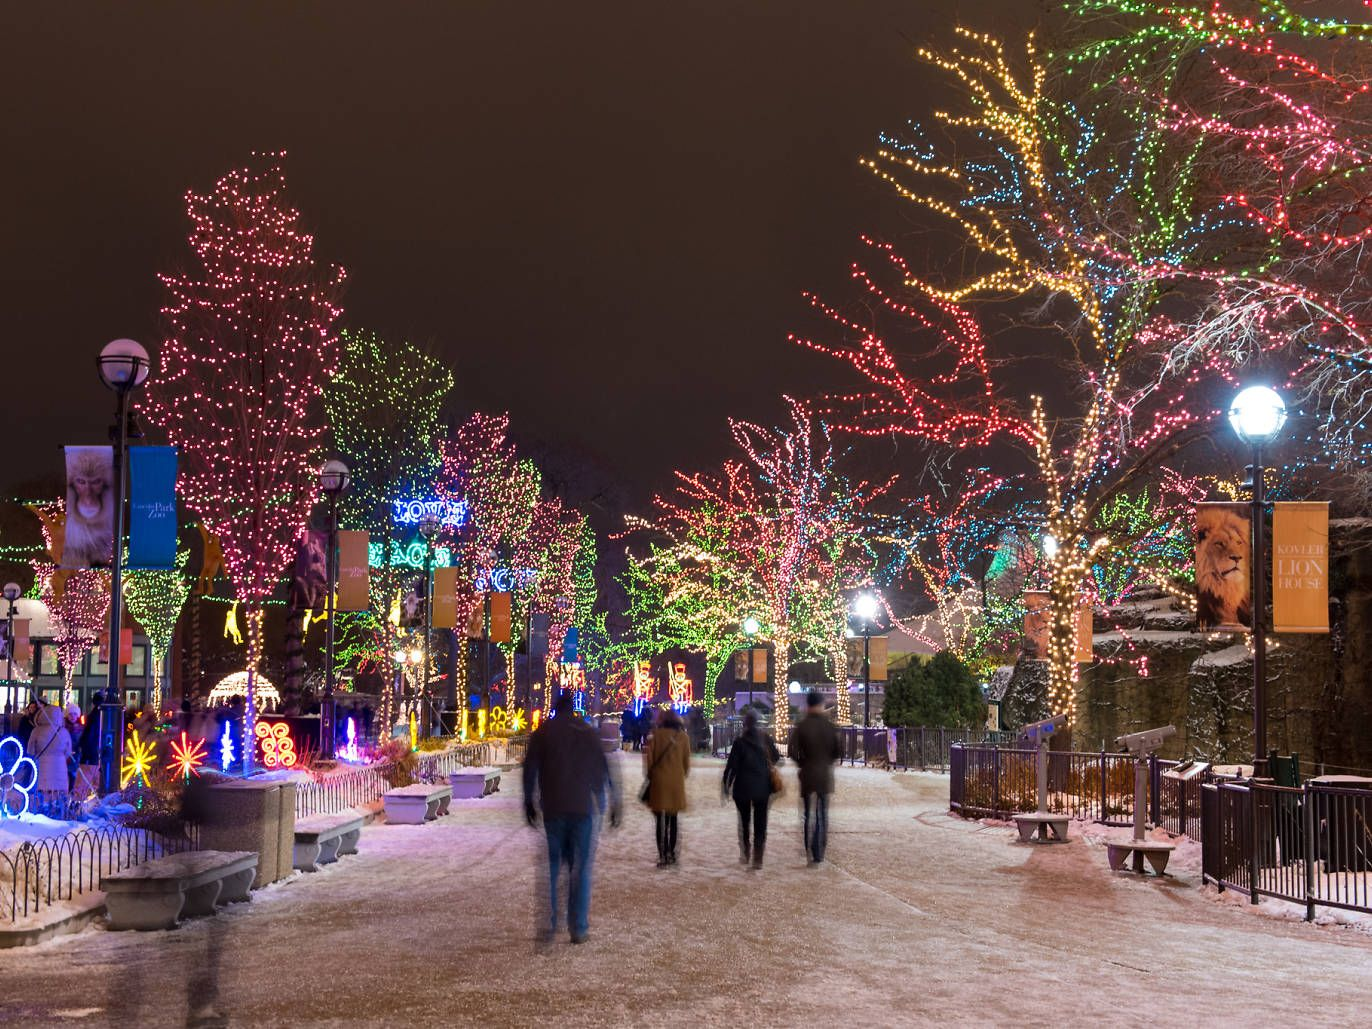 16 Things To Do For Christmas In Chicago Chicago Christmas Lincoln Park Zoo Chicago Zoo Lights